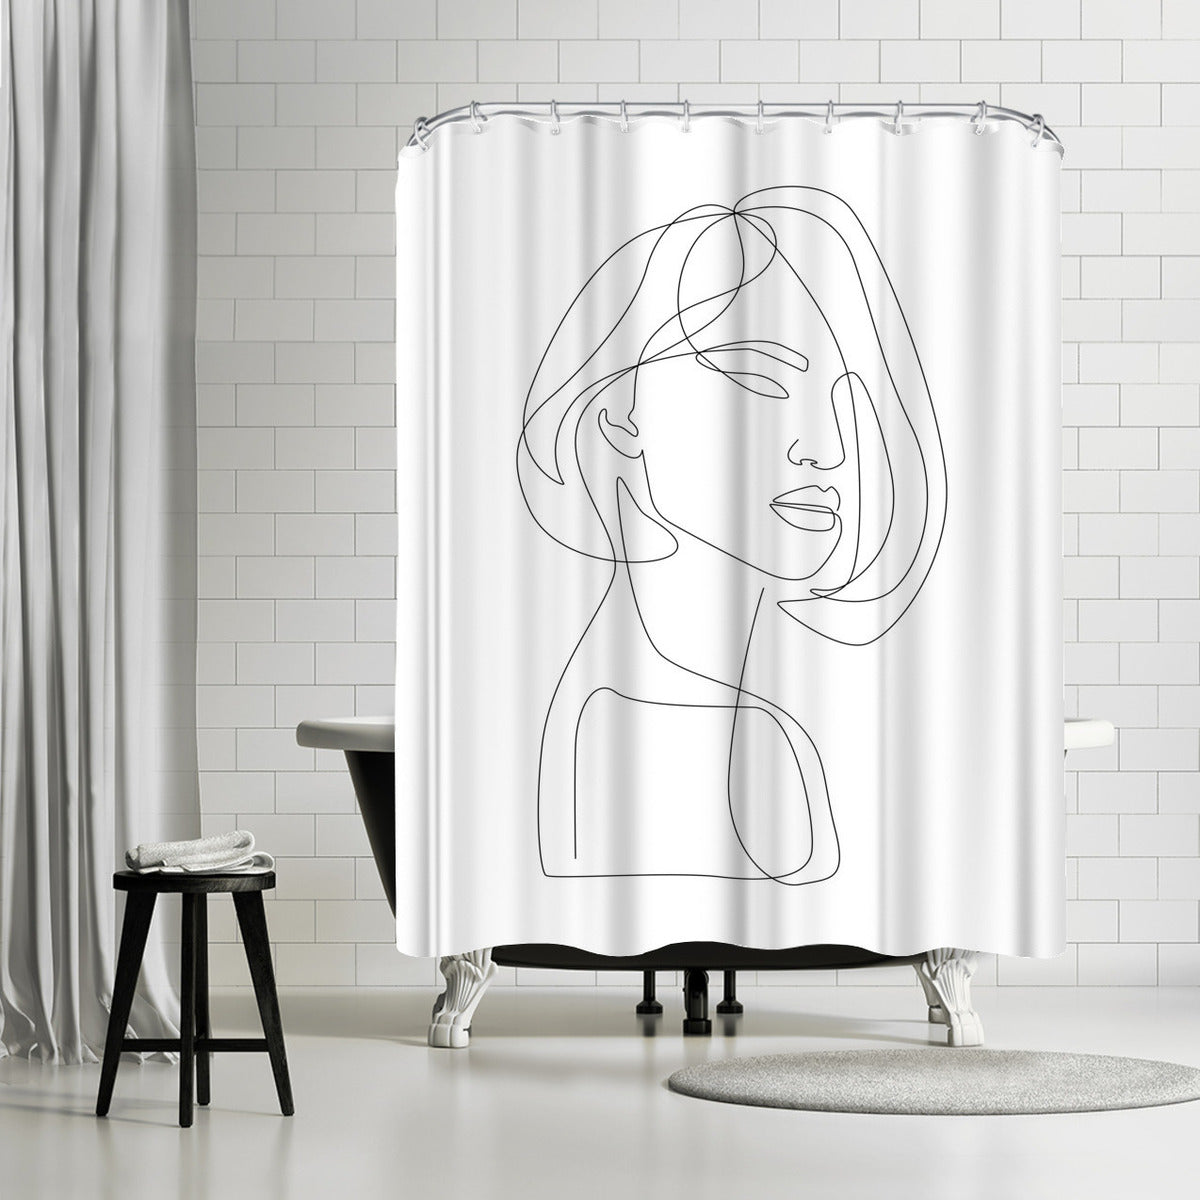 Flirty by Explicit Design Shower Curtain -  - Americanflat